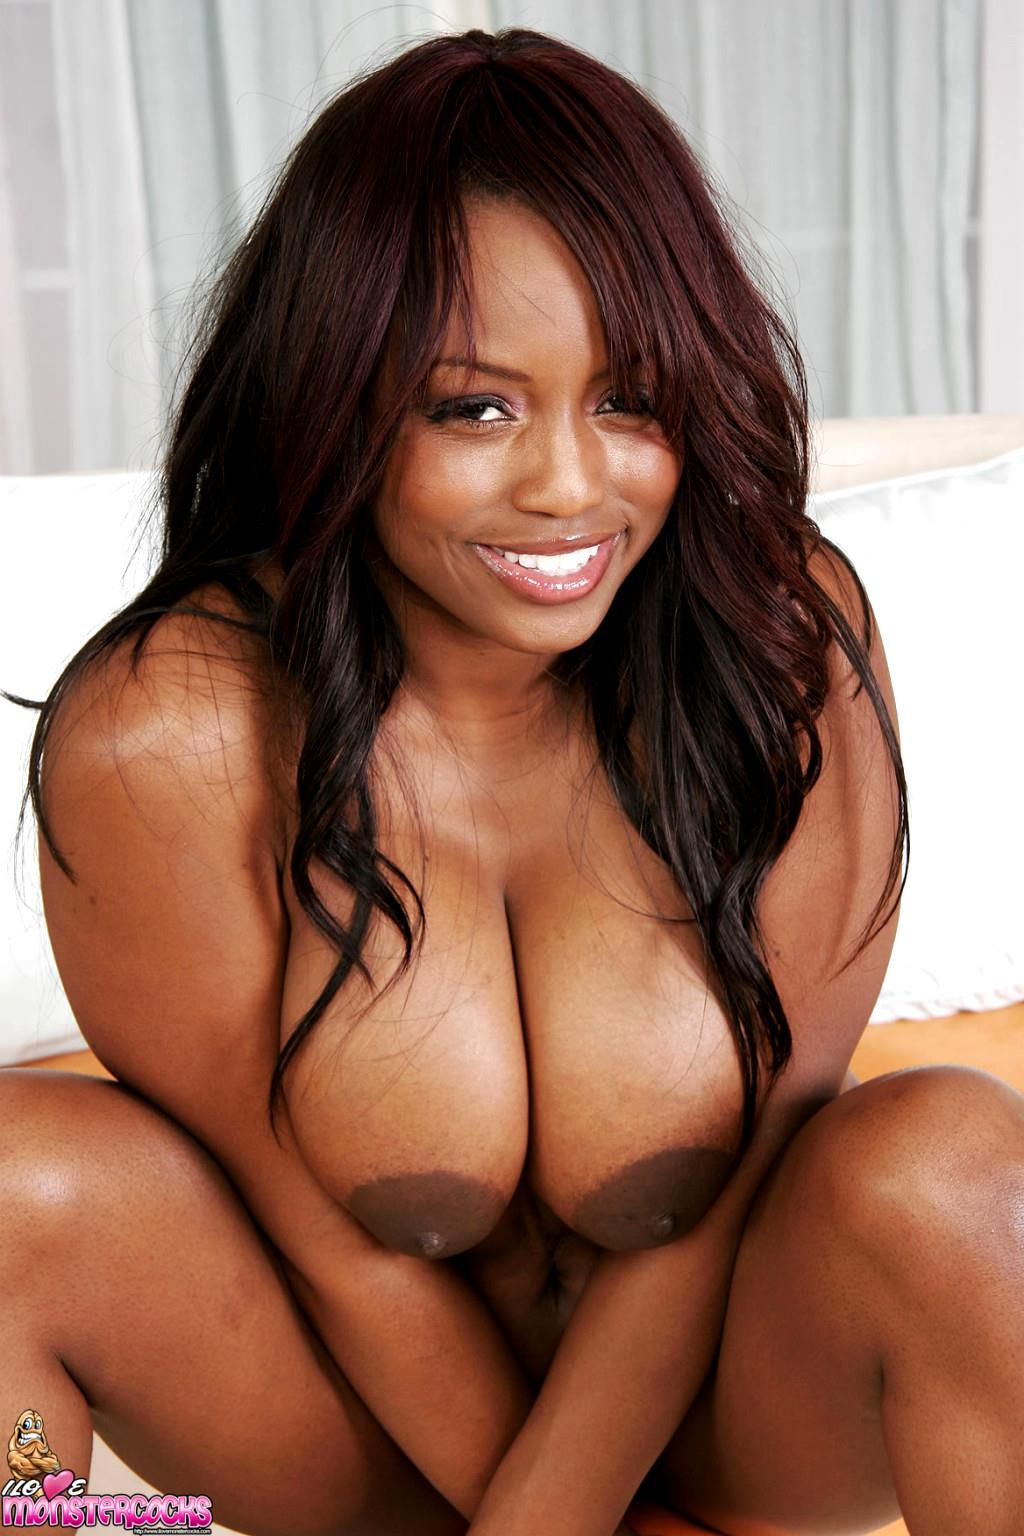 Nude pictures of jada fire